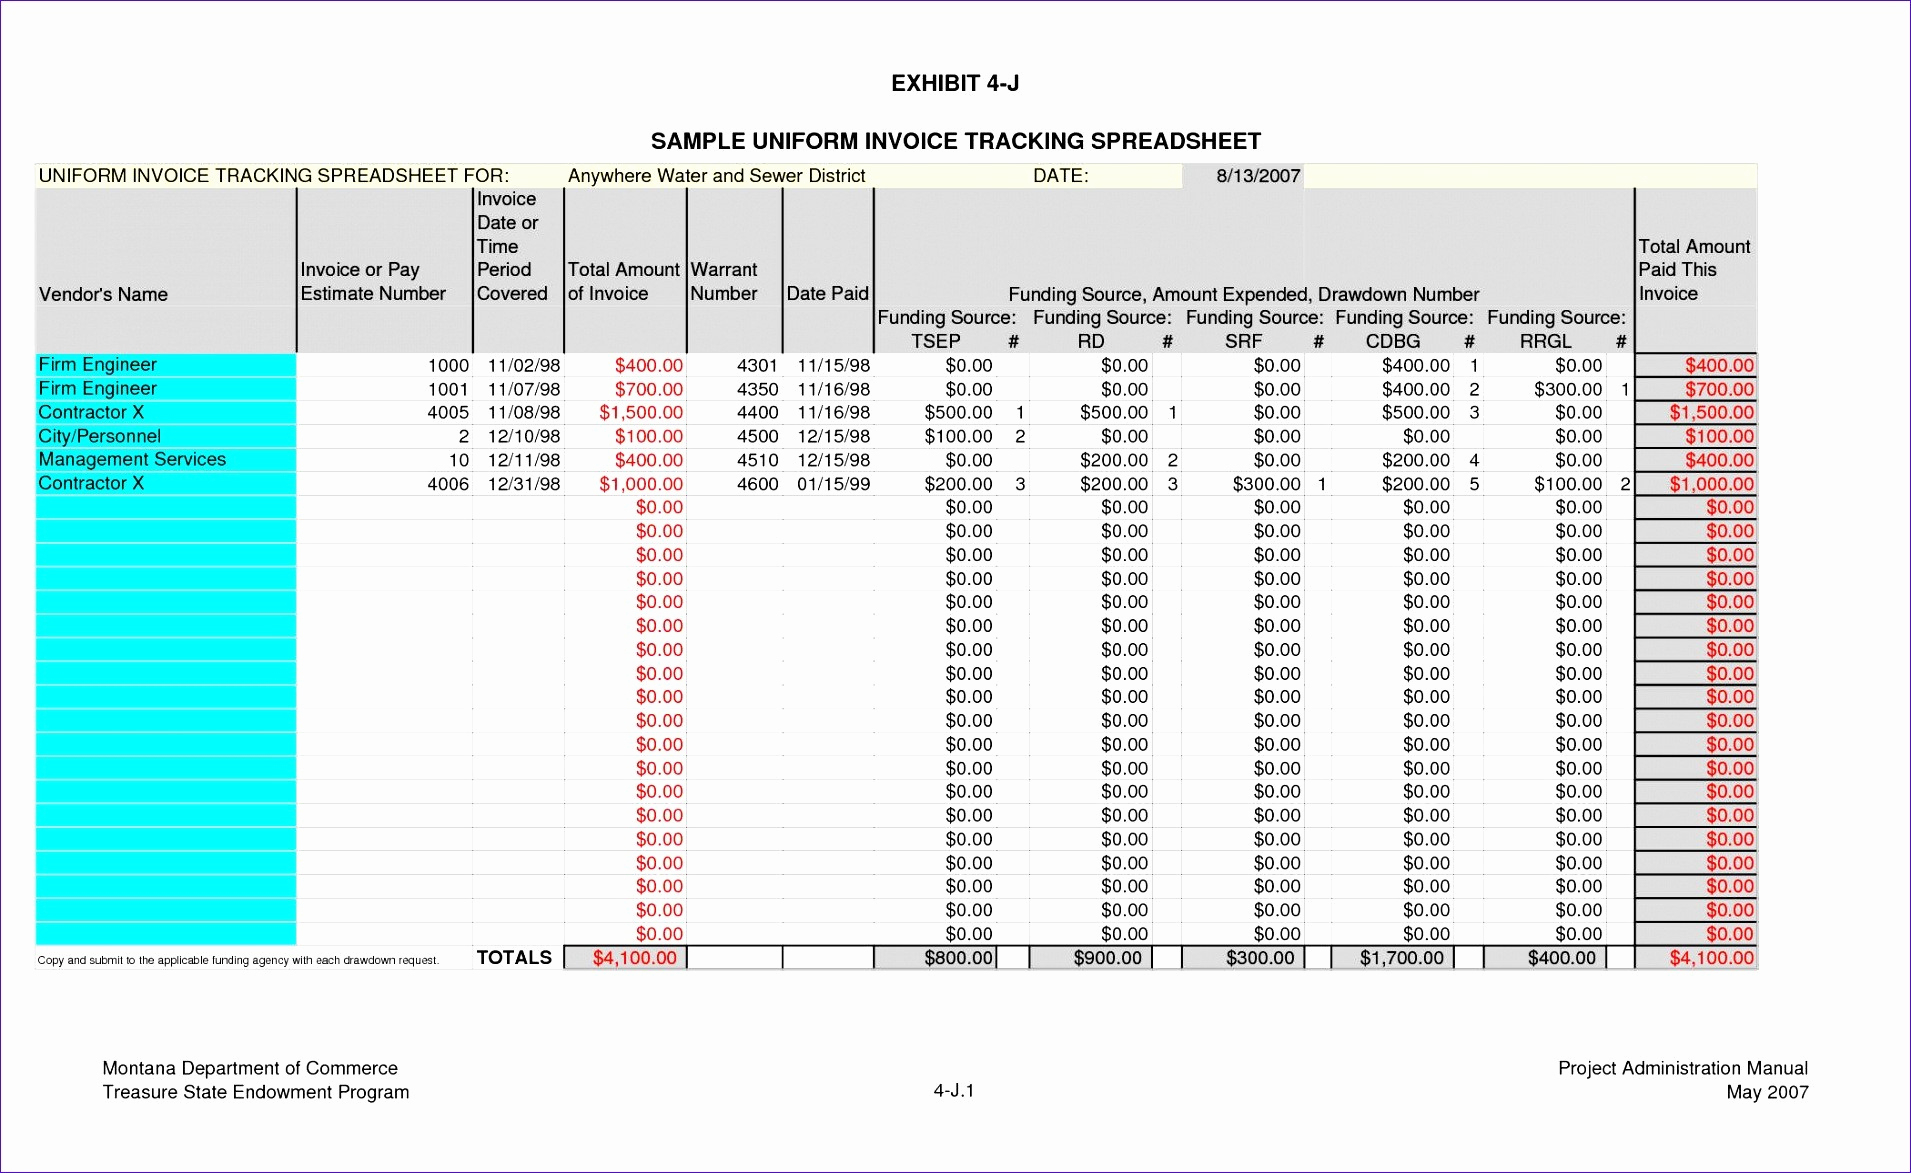 Construction Cost Tracking Spreadsheet New Realtor Expense Tracking With Expense Tracking Spreadsheet